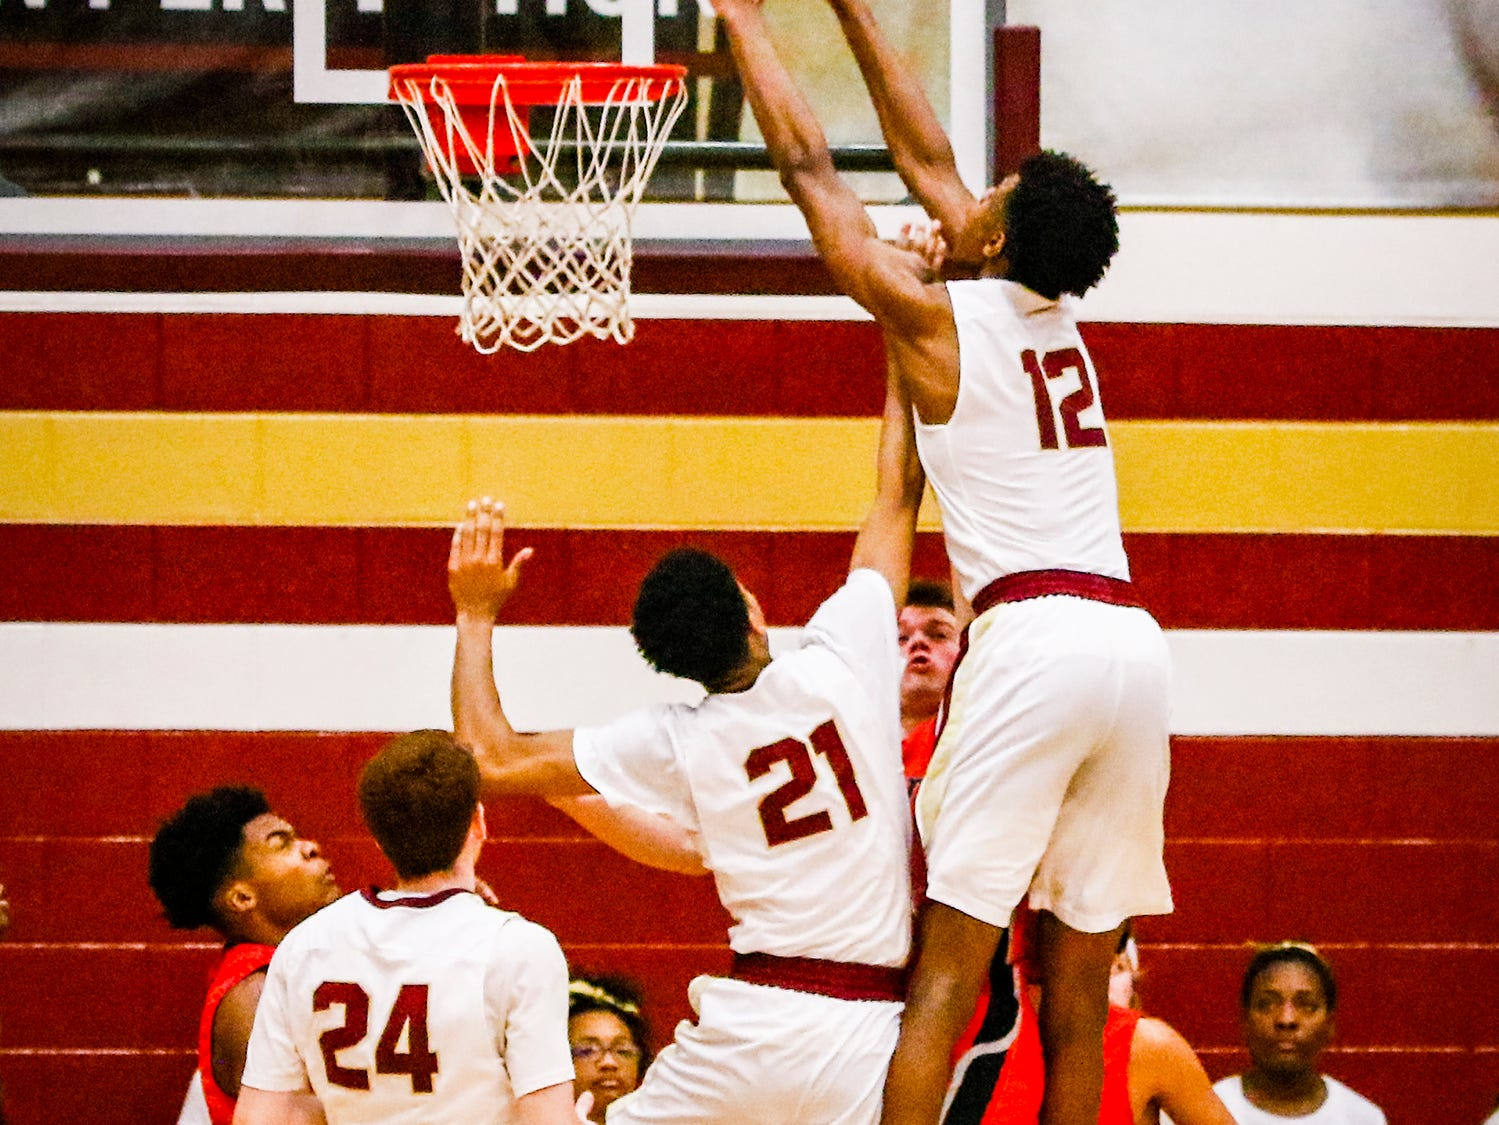 Riverdale's Elijah Cobb dunks home two of his eight points during Friday's 73-46 win over Stewarts Creek.